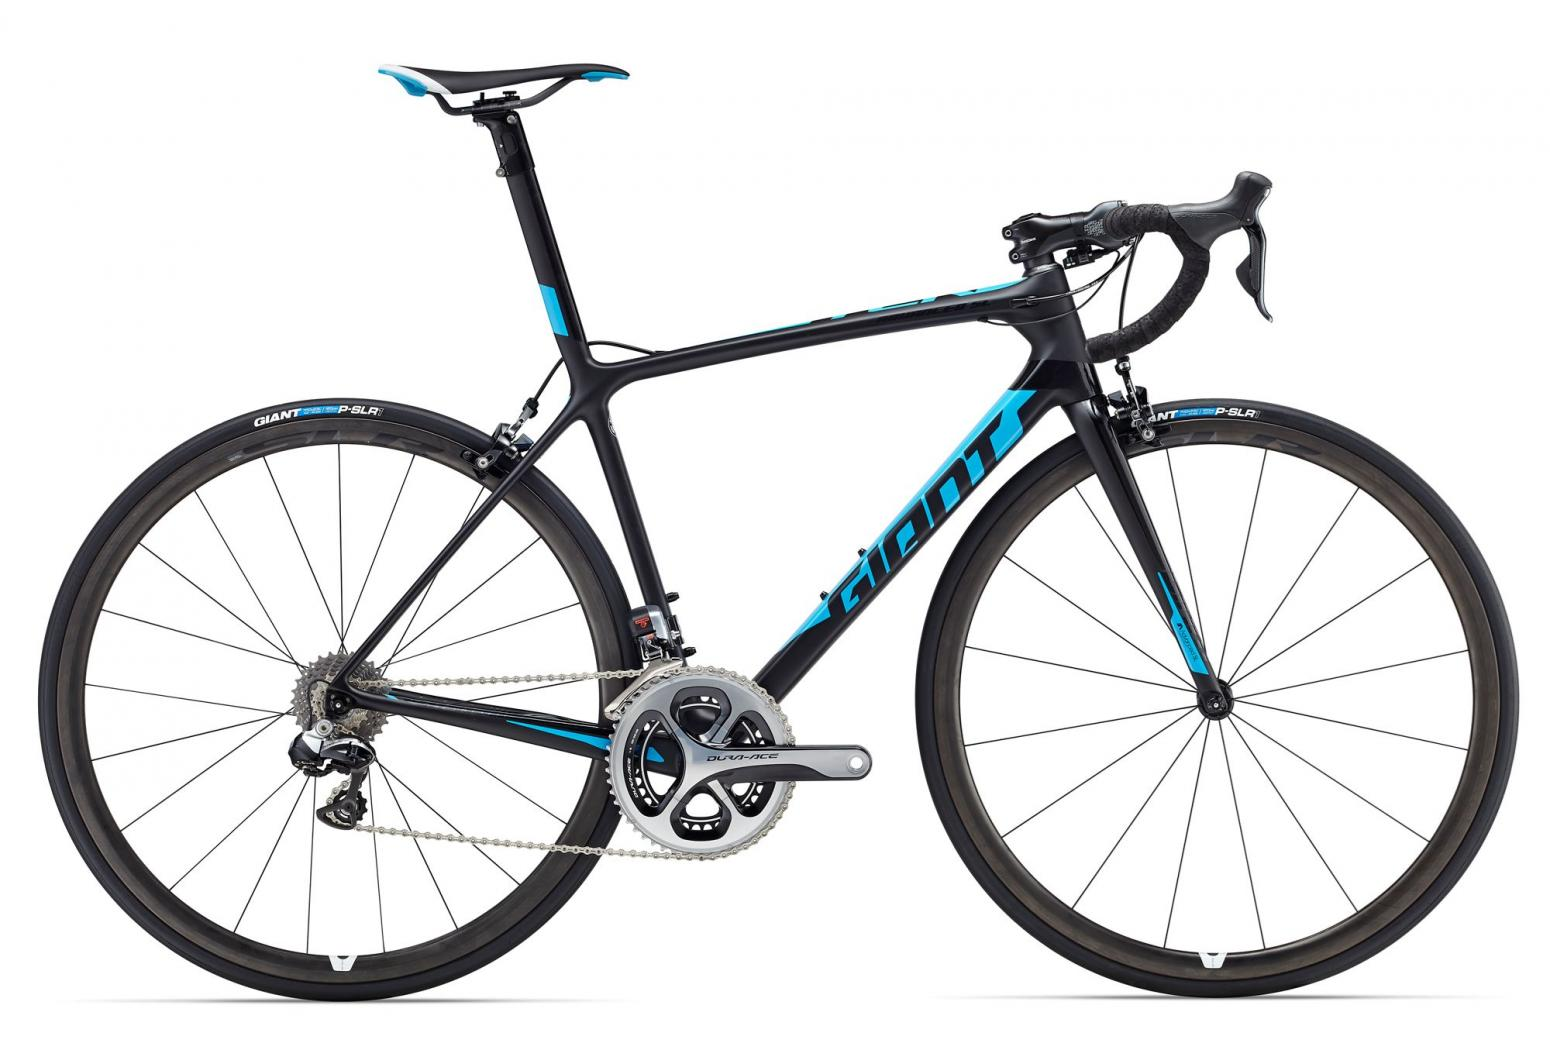 Giant Rennvelo TCR Advanced SL 0 2016